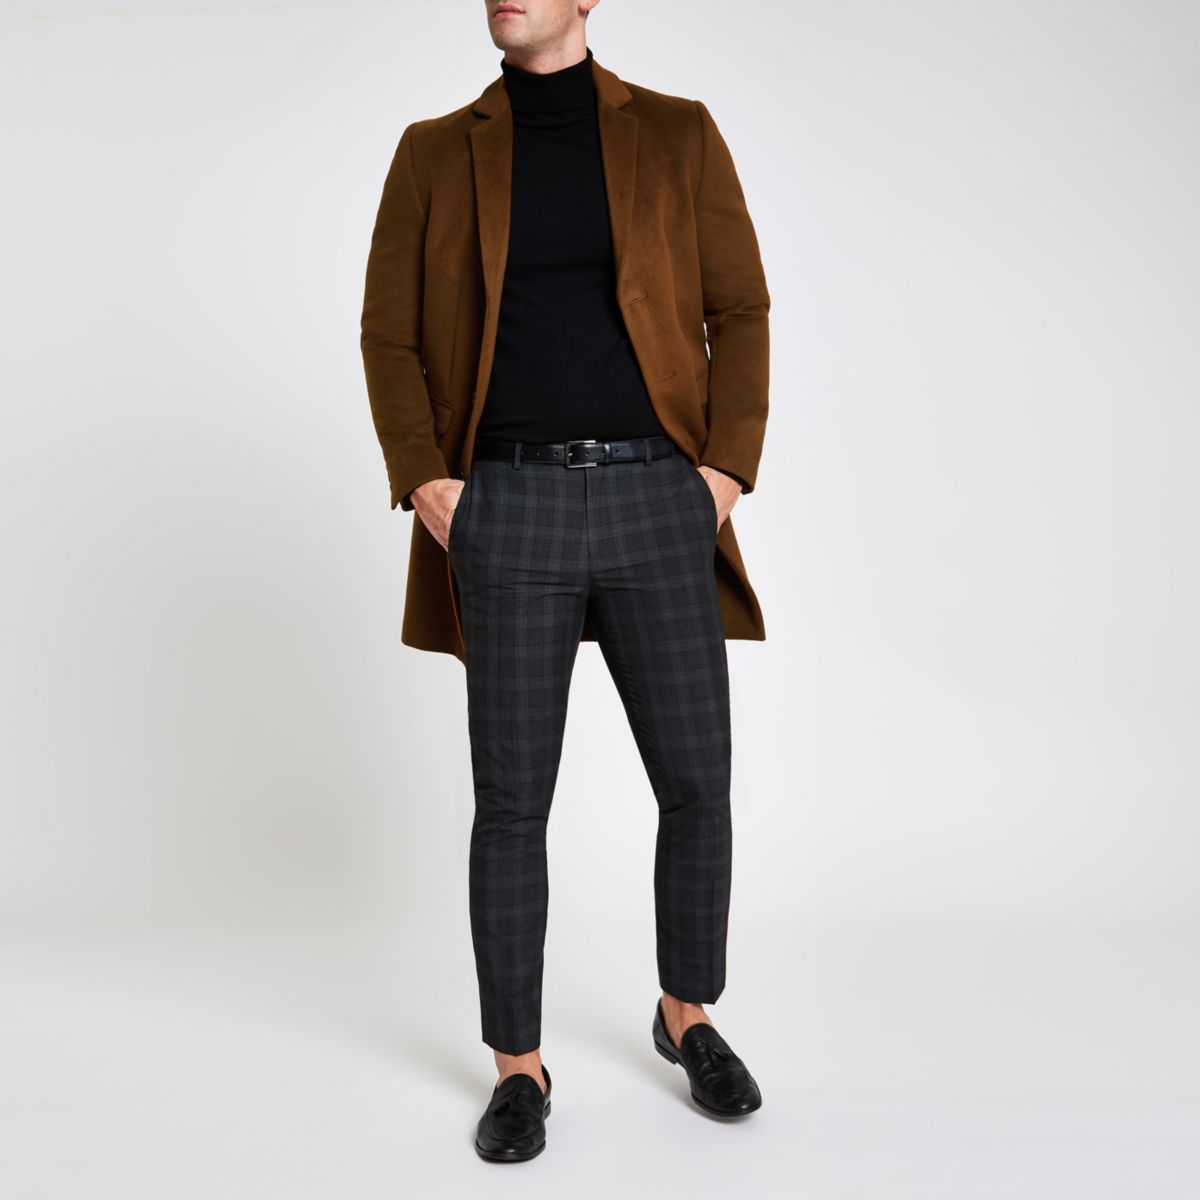 Brown button up overcoat